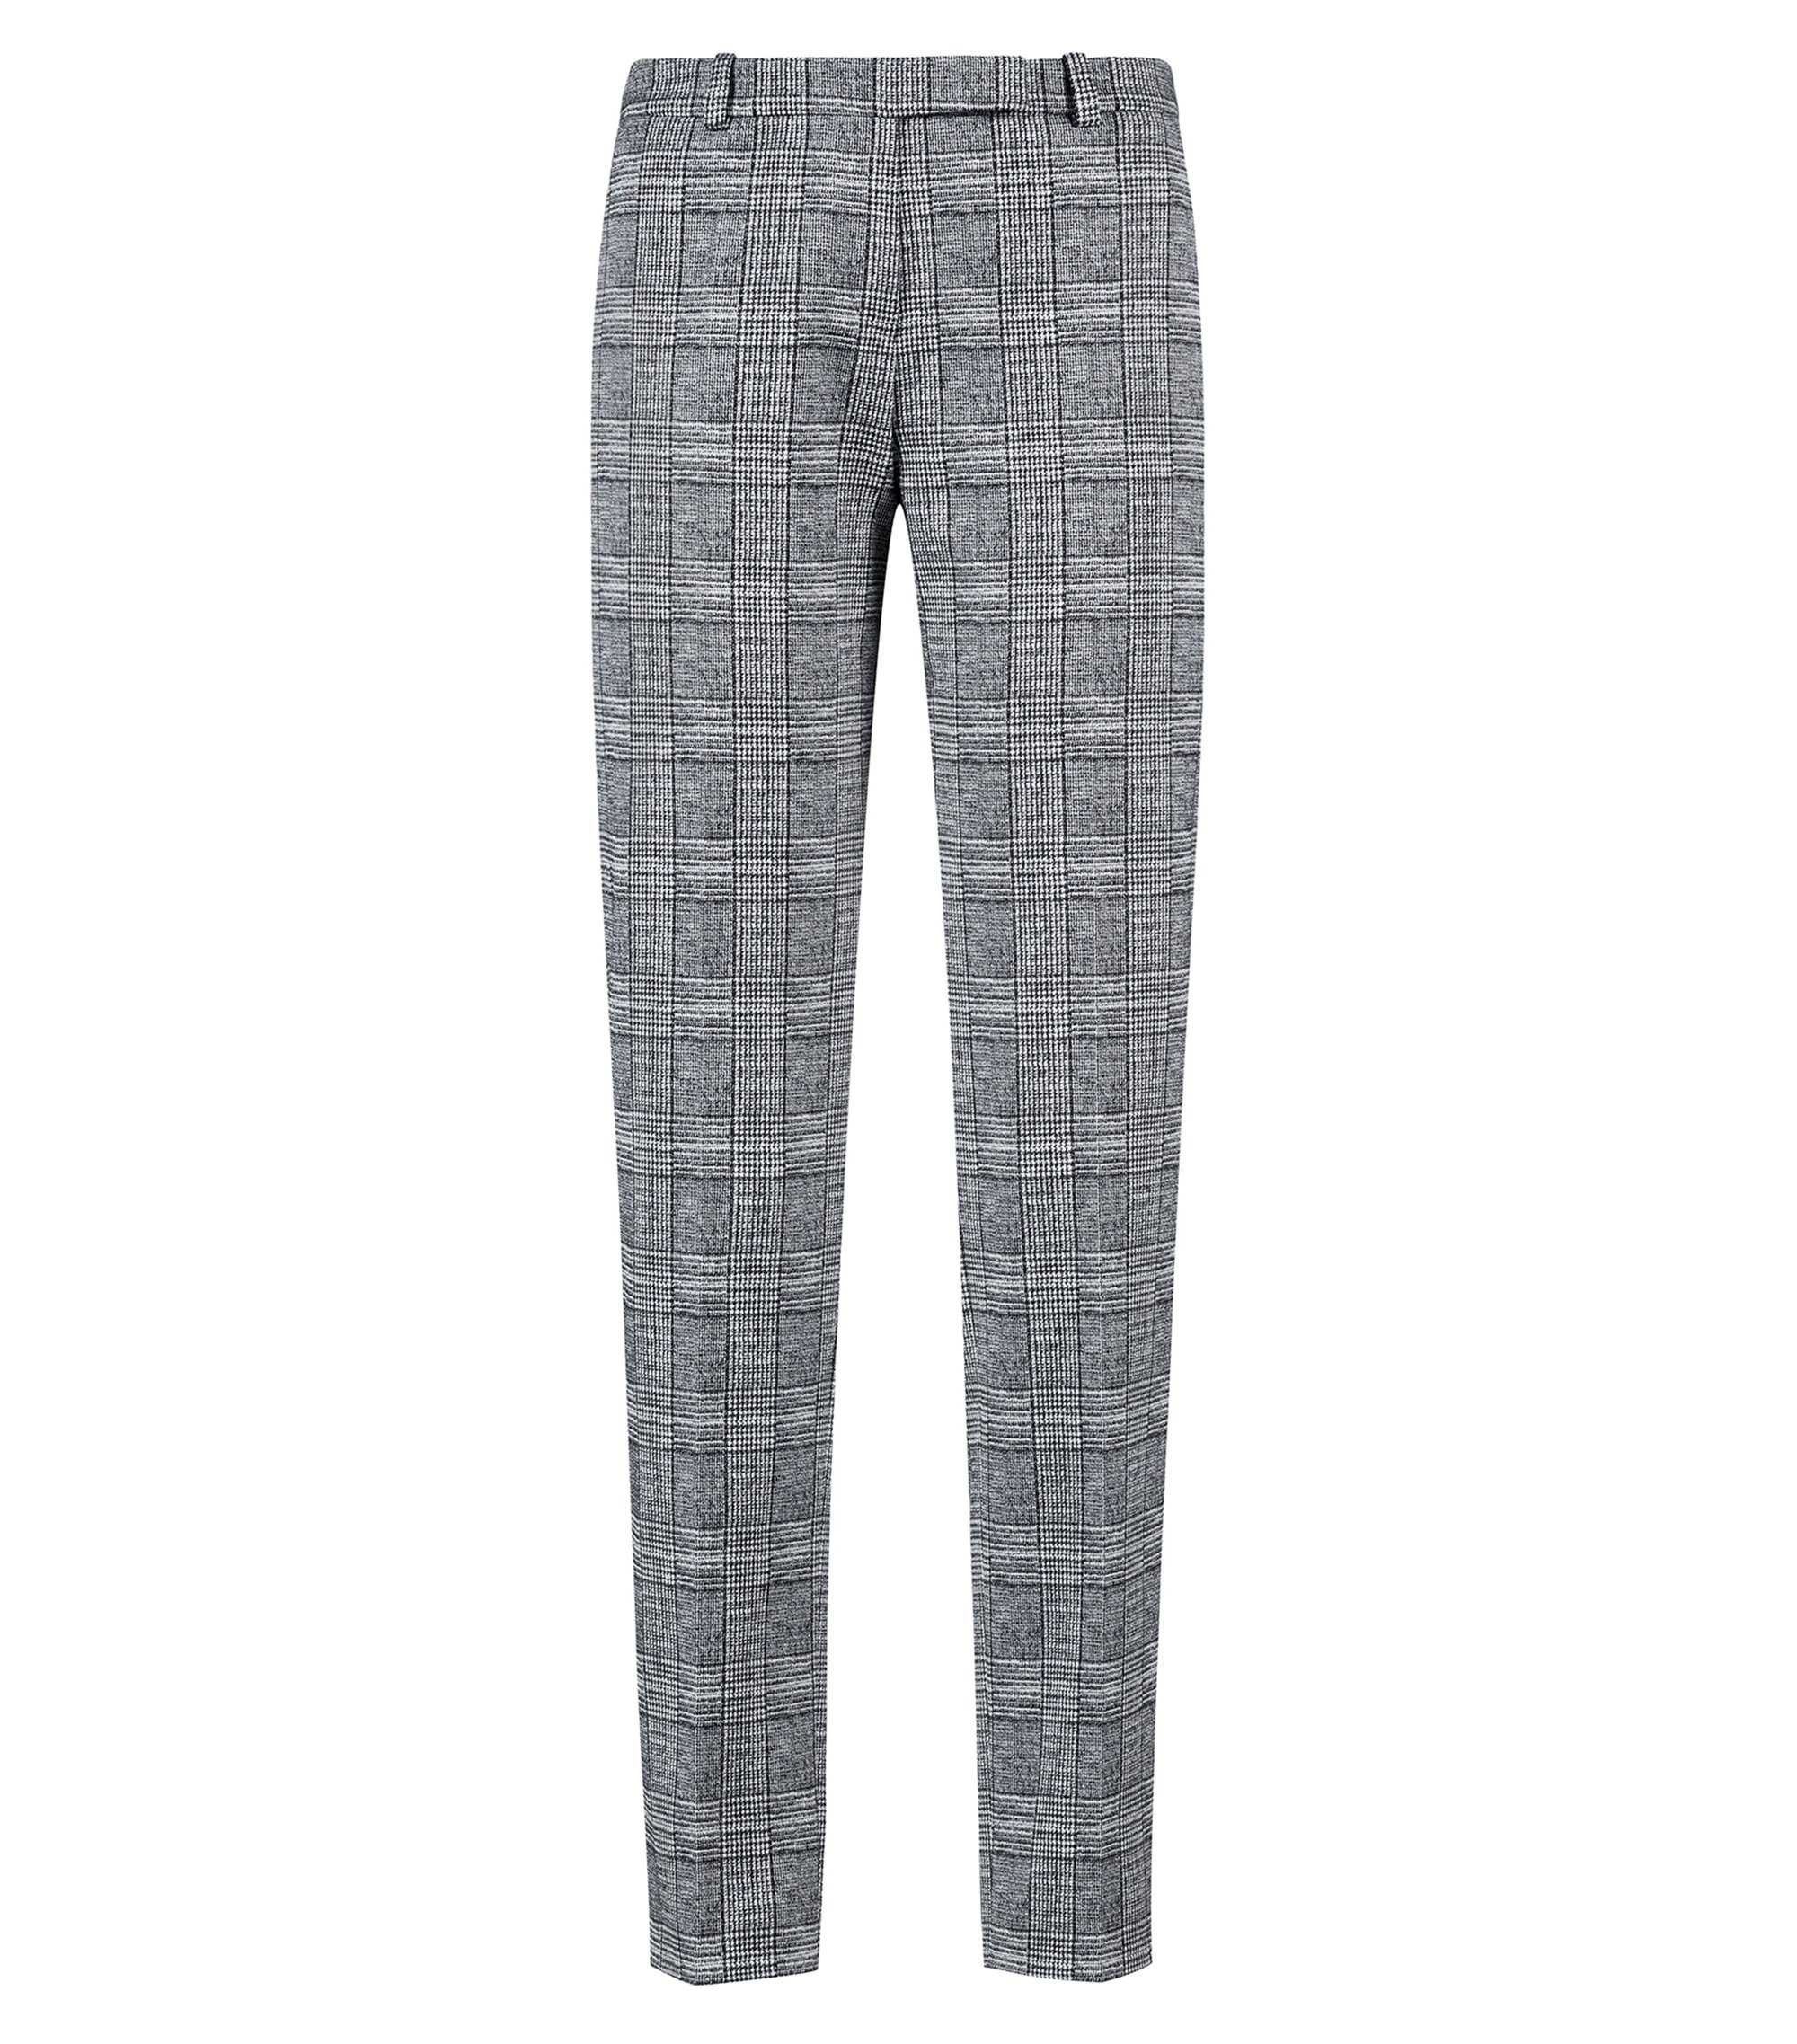 Cropped cigarette trousers in black-and-white check, Patterned